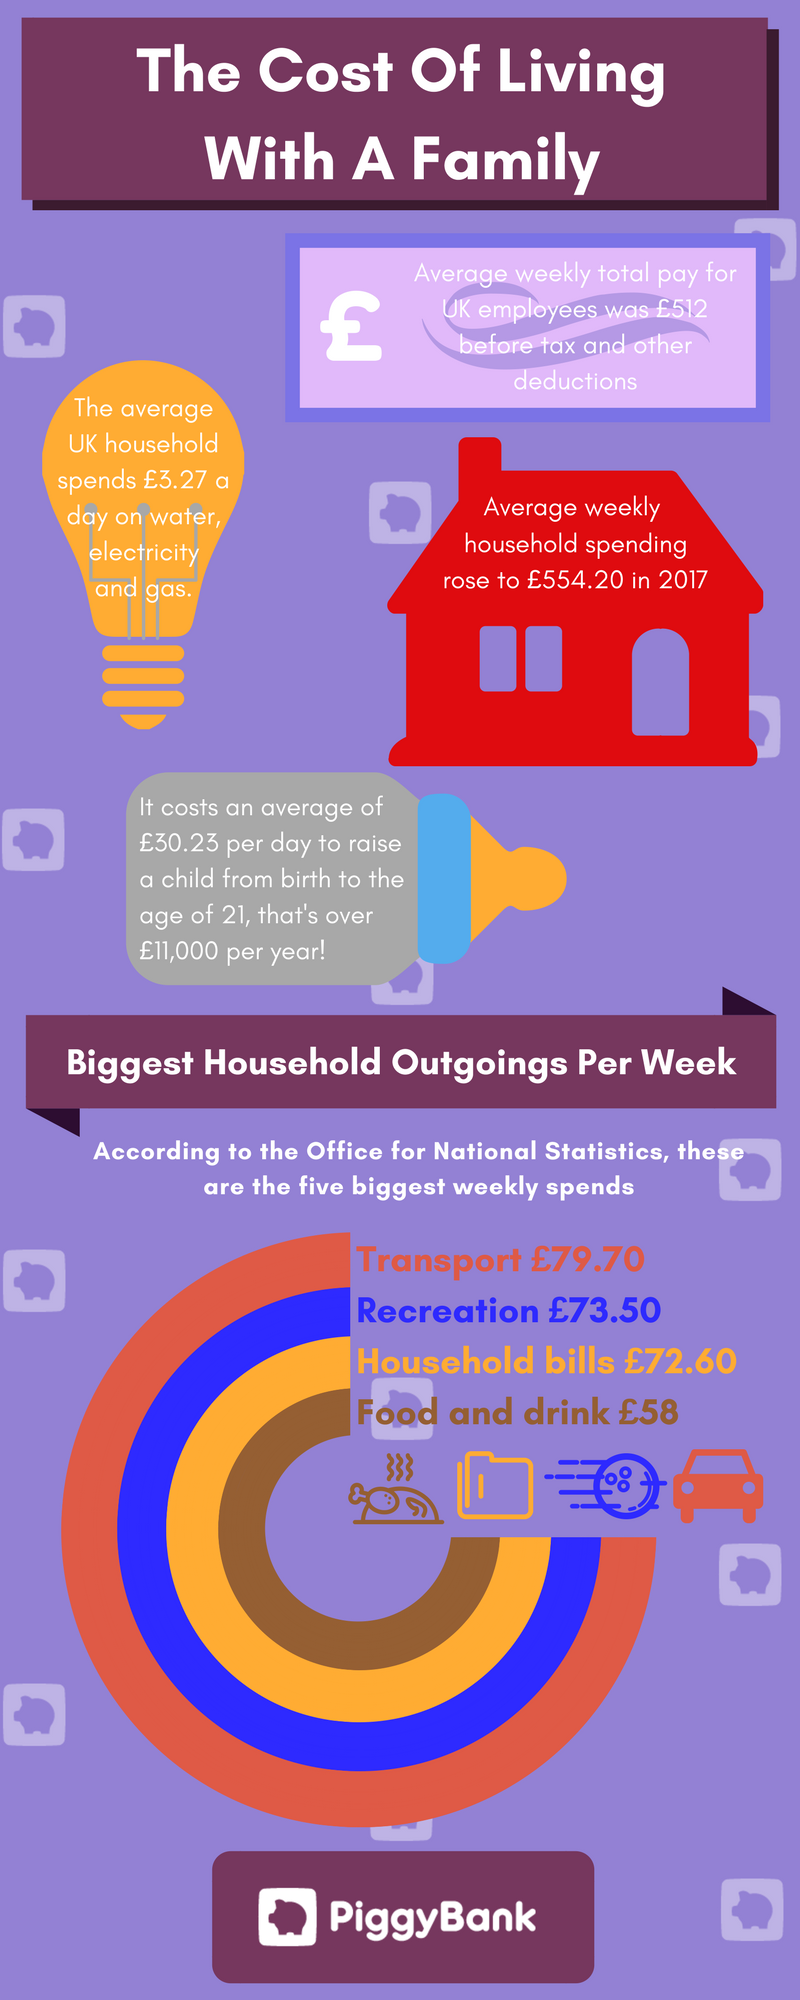 budgeting with family infographic